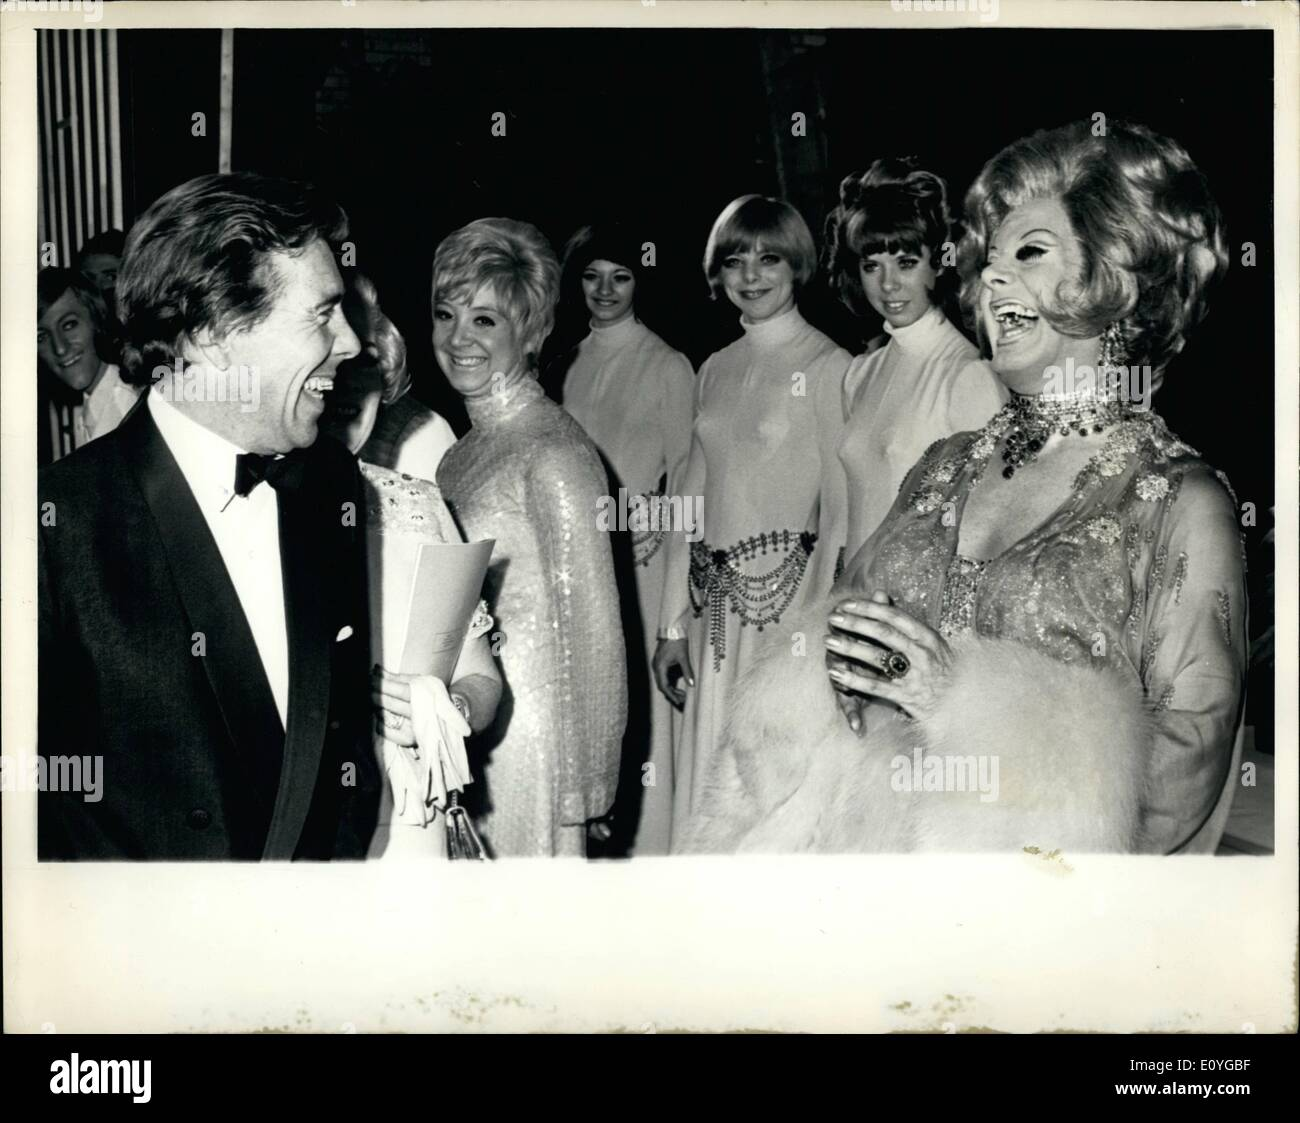 Apr. 04, 1970 - Lord Snowdon Shares A Joke With Danny La Rue: Lord Snowdon shares a joke with female impersonator Danny La Rue (right), after going backstage at the palace Theatre, Shaftesbury Avenue, London, last night, to meet the cast of the snow ''Danny La Rue At The Palace'', which opened there last night. - Stock Image